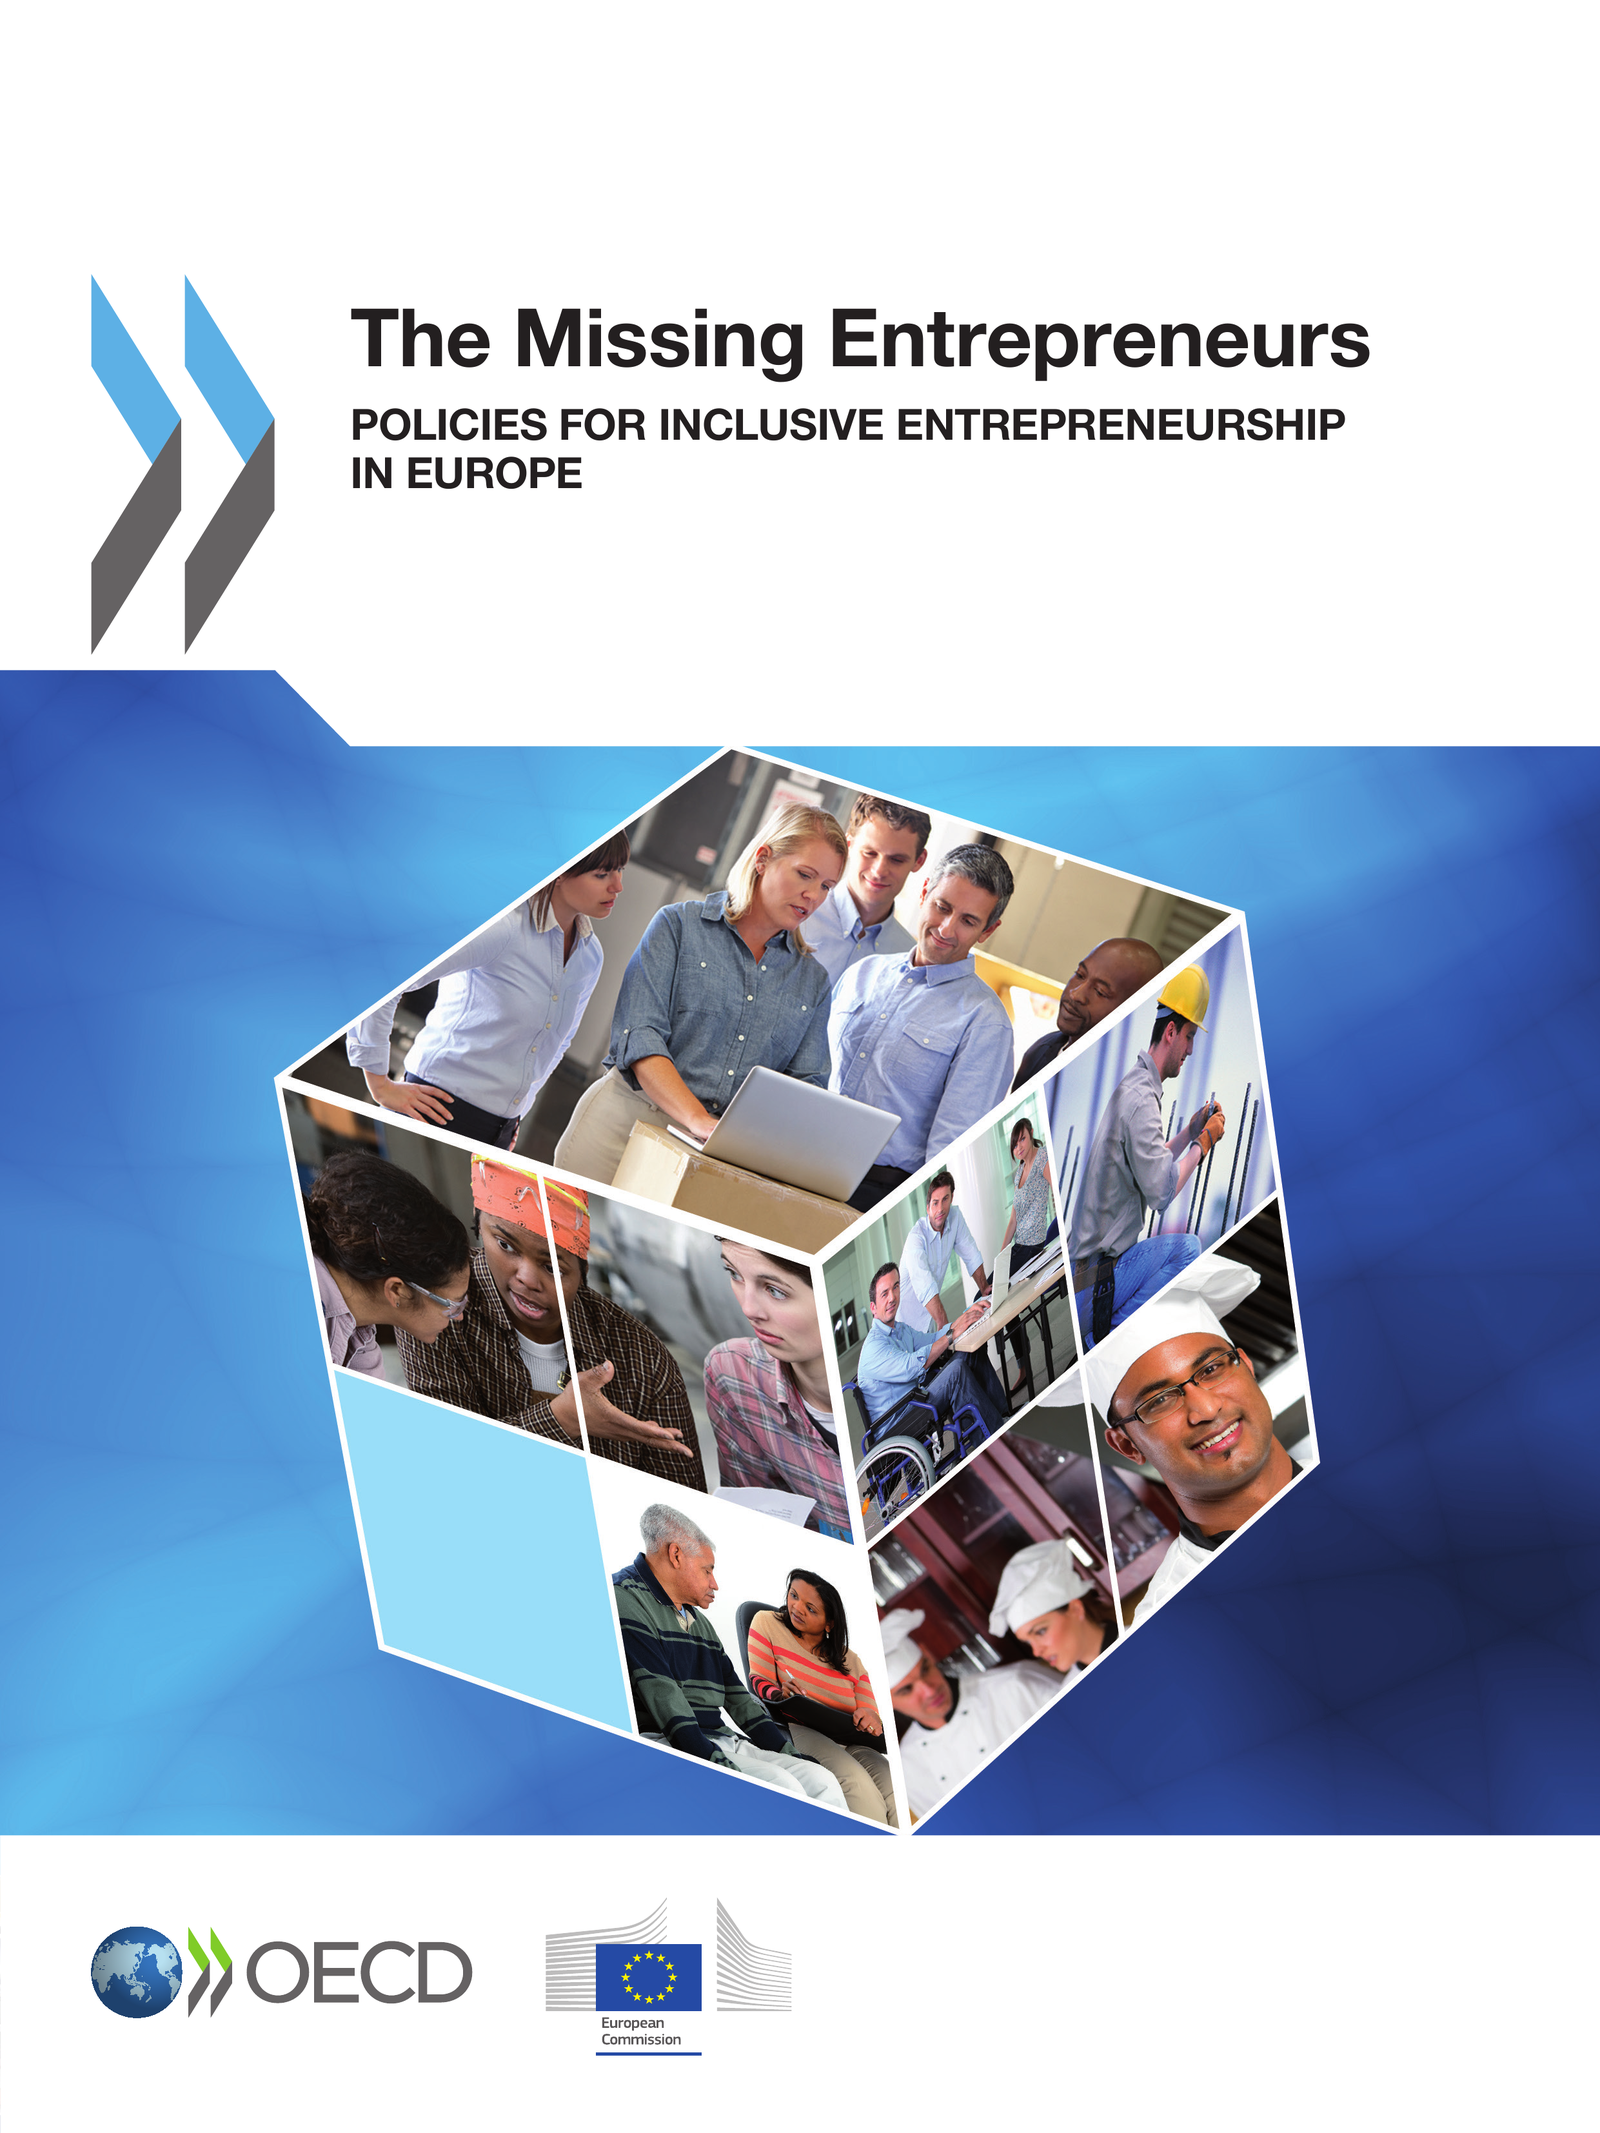 The Missing Entrepreneurs